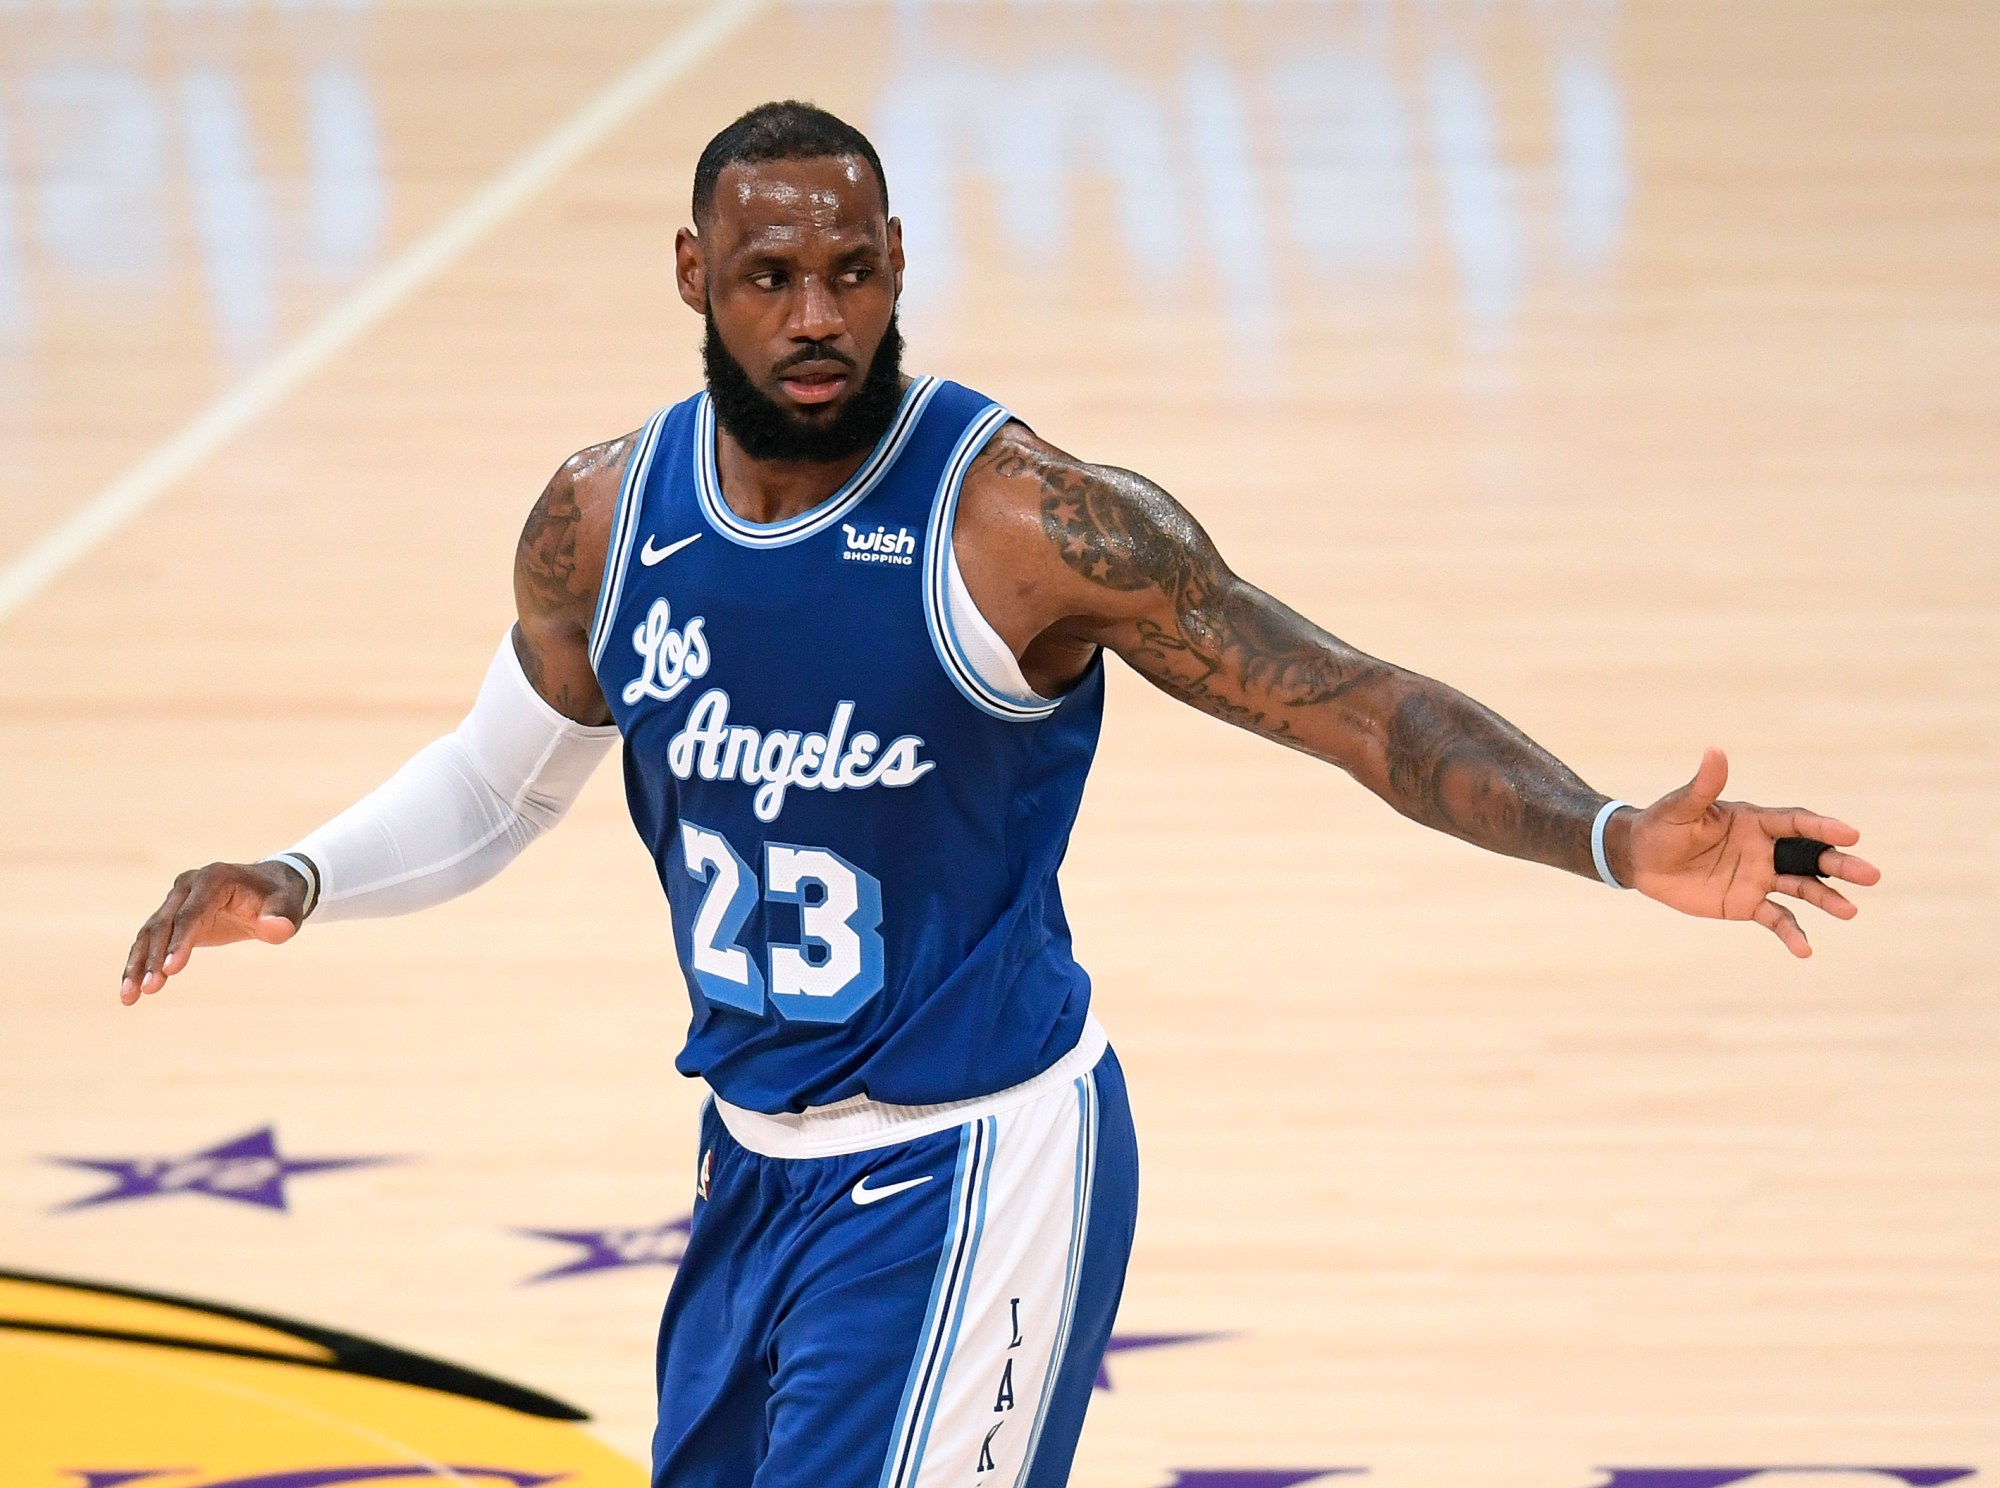 LeBron James #23 of the Los Angeles Lakers reacts to a basket during a 137-121 Lakers win over the Minnesota Timberwolves at Staples Center on March 16, 2021. (Harry How/Getty Images)